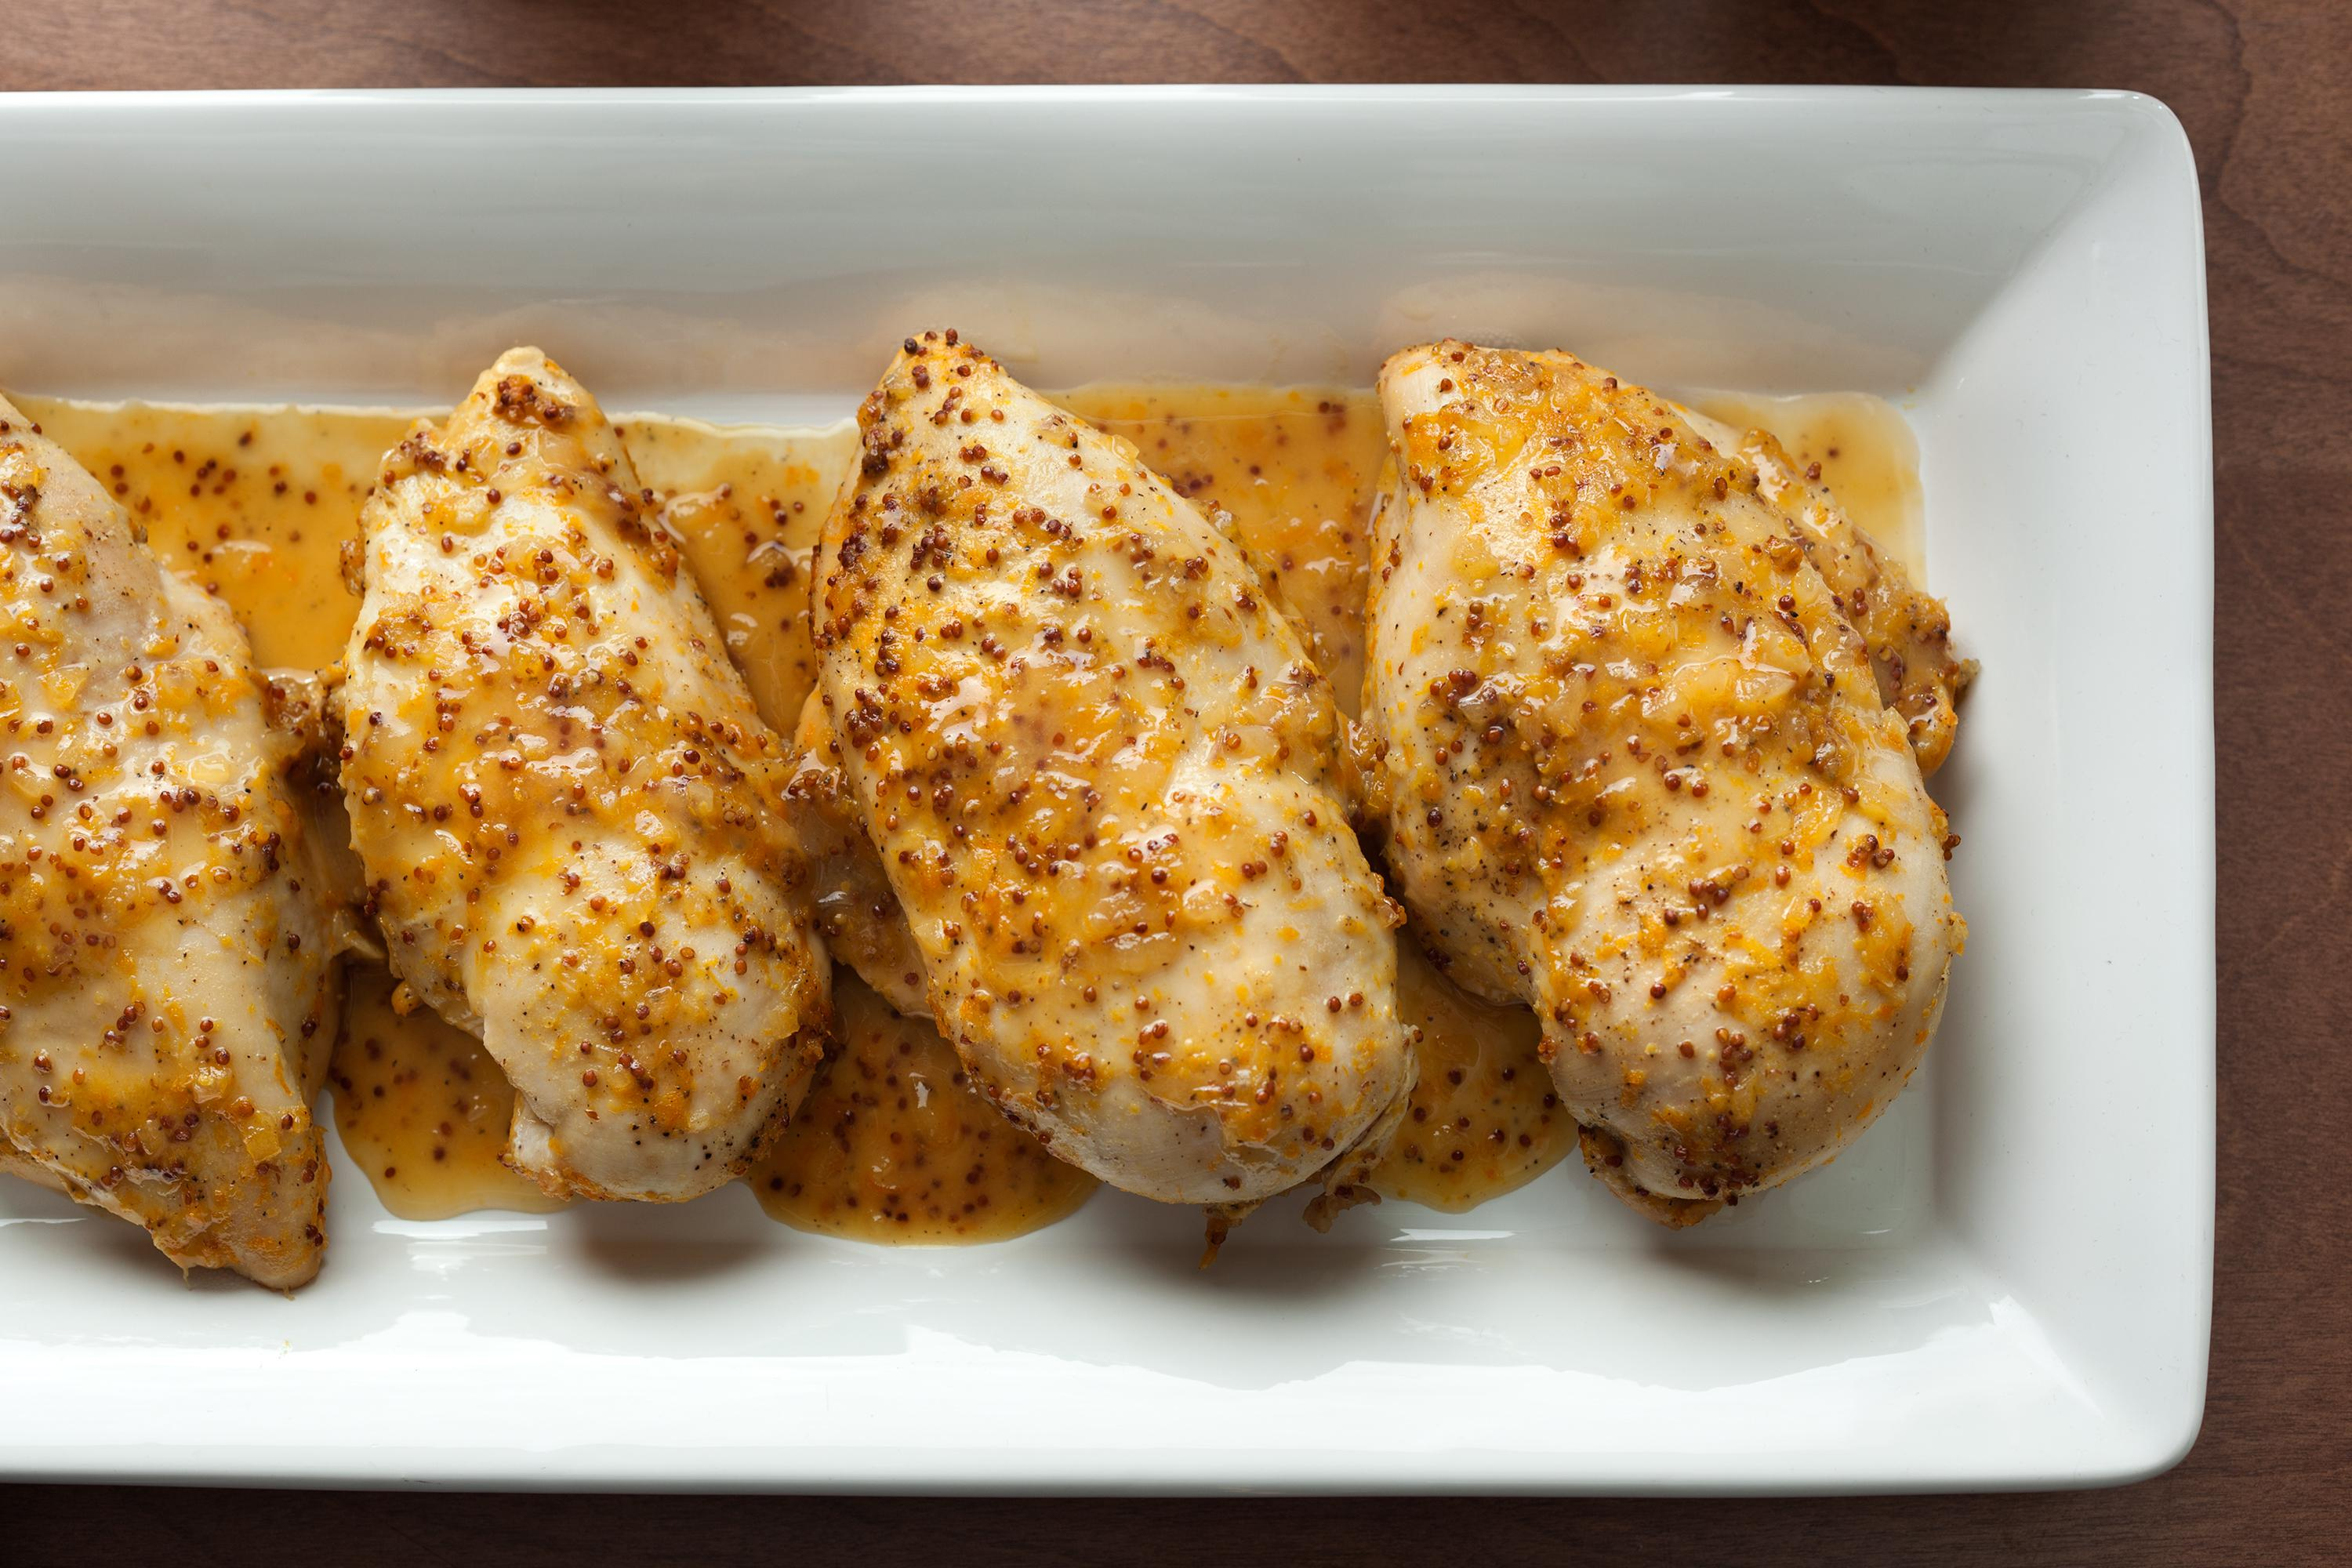 Orange honey mustard baked chicken